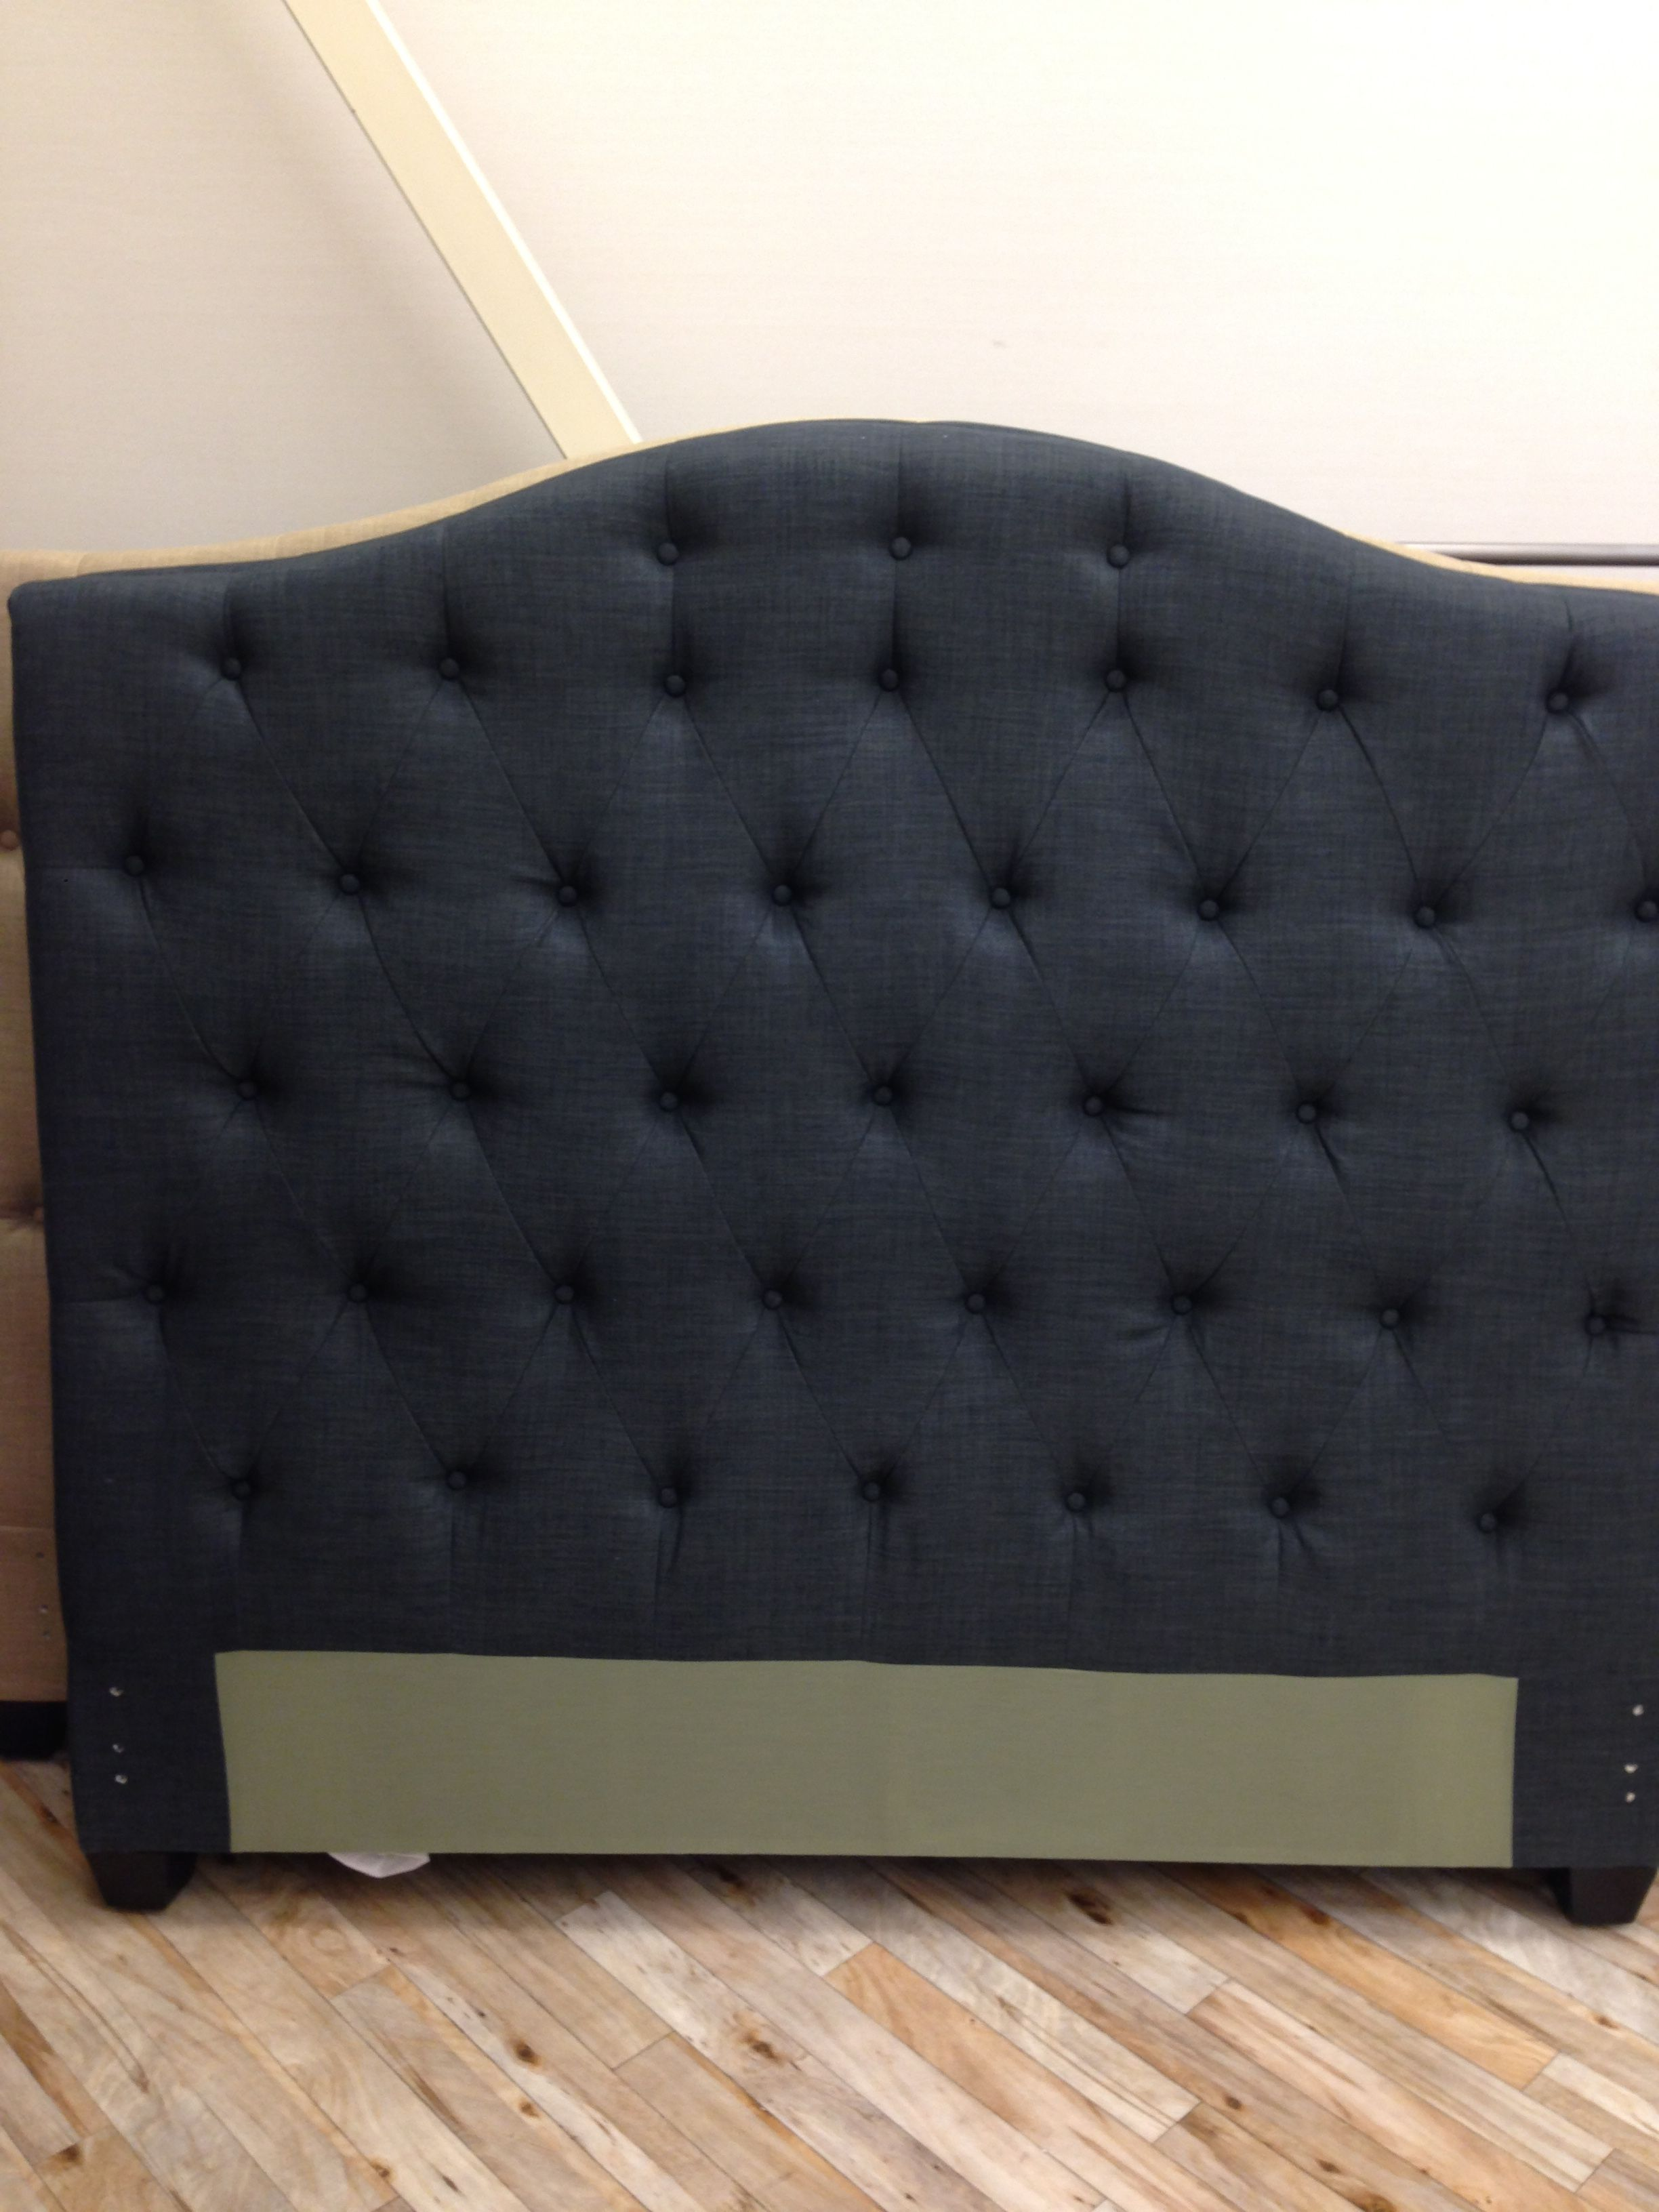 Navy Tufted Headboard By High Fashion Home: There Is No Doubt About It: This Deep Navy Tufted